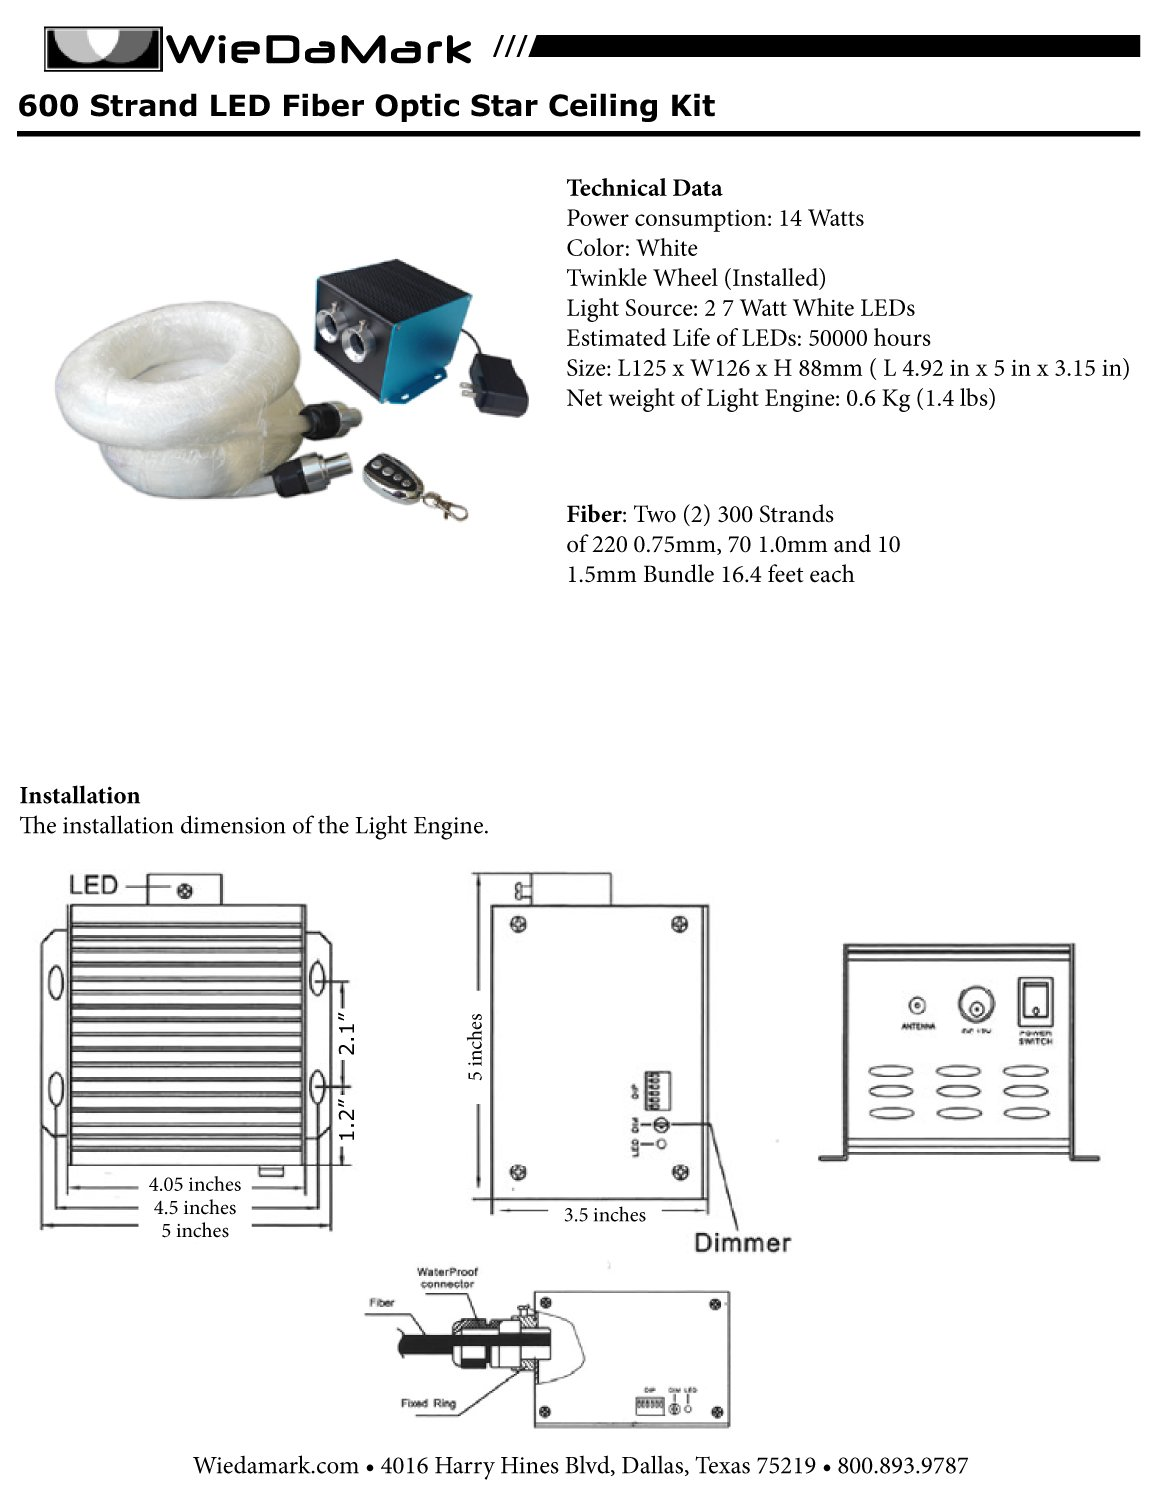 Wiedamark 600 Strand Led Fiber Optic Star Ceiling Kit Engine Diagram With Dimming Feature Musical Instruments